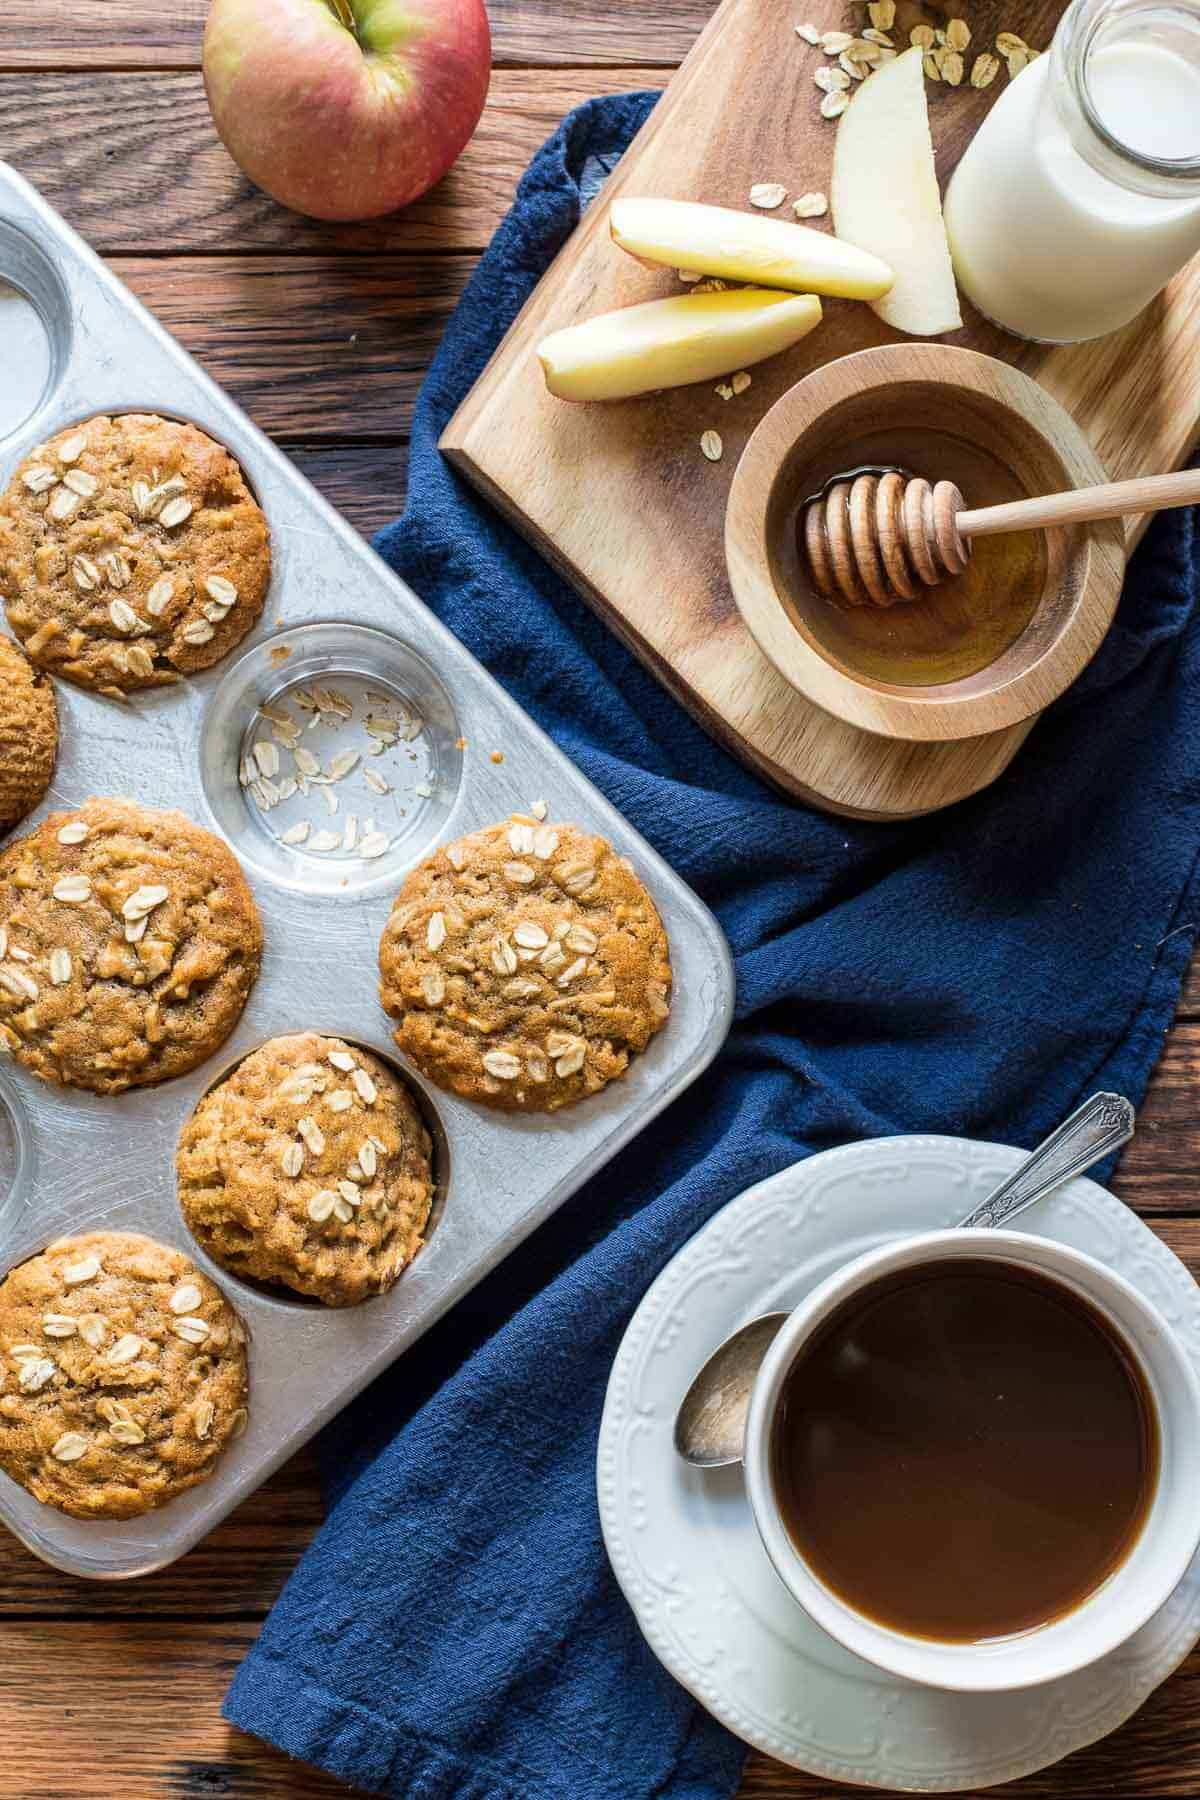 These Apple Oatmeal Muffins are lightly sweetened with honey and spiced with cinnamon for a hearty, healthy breakfast!